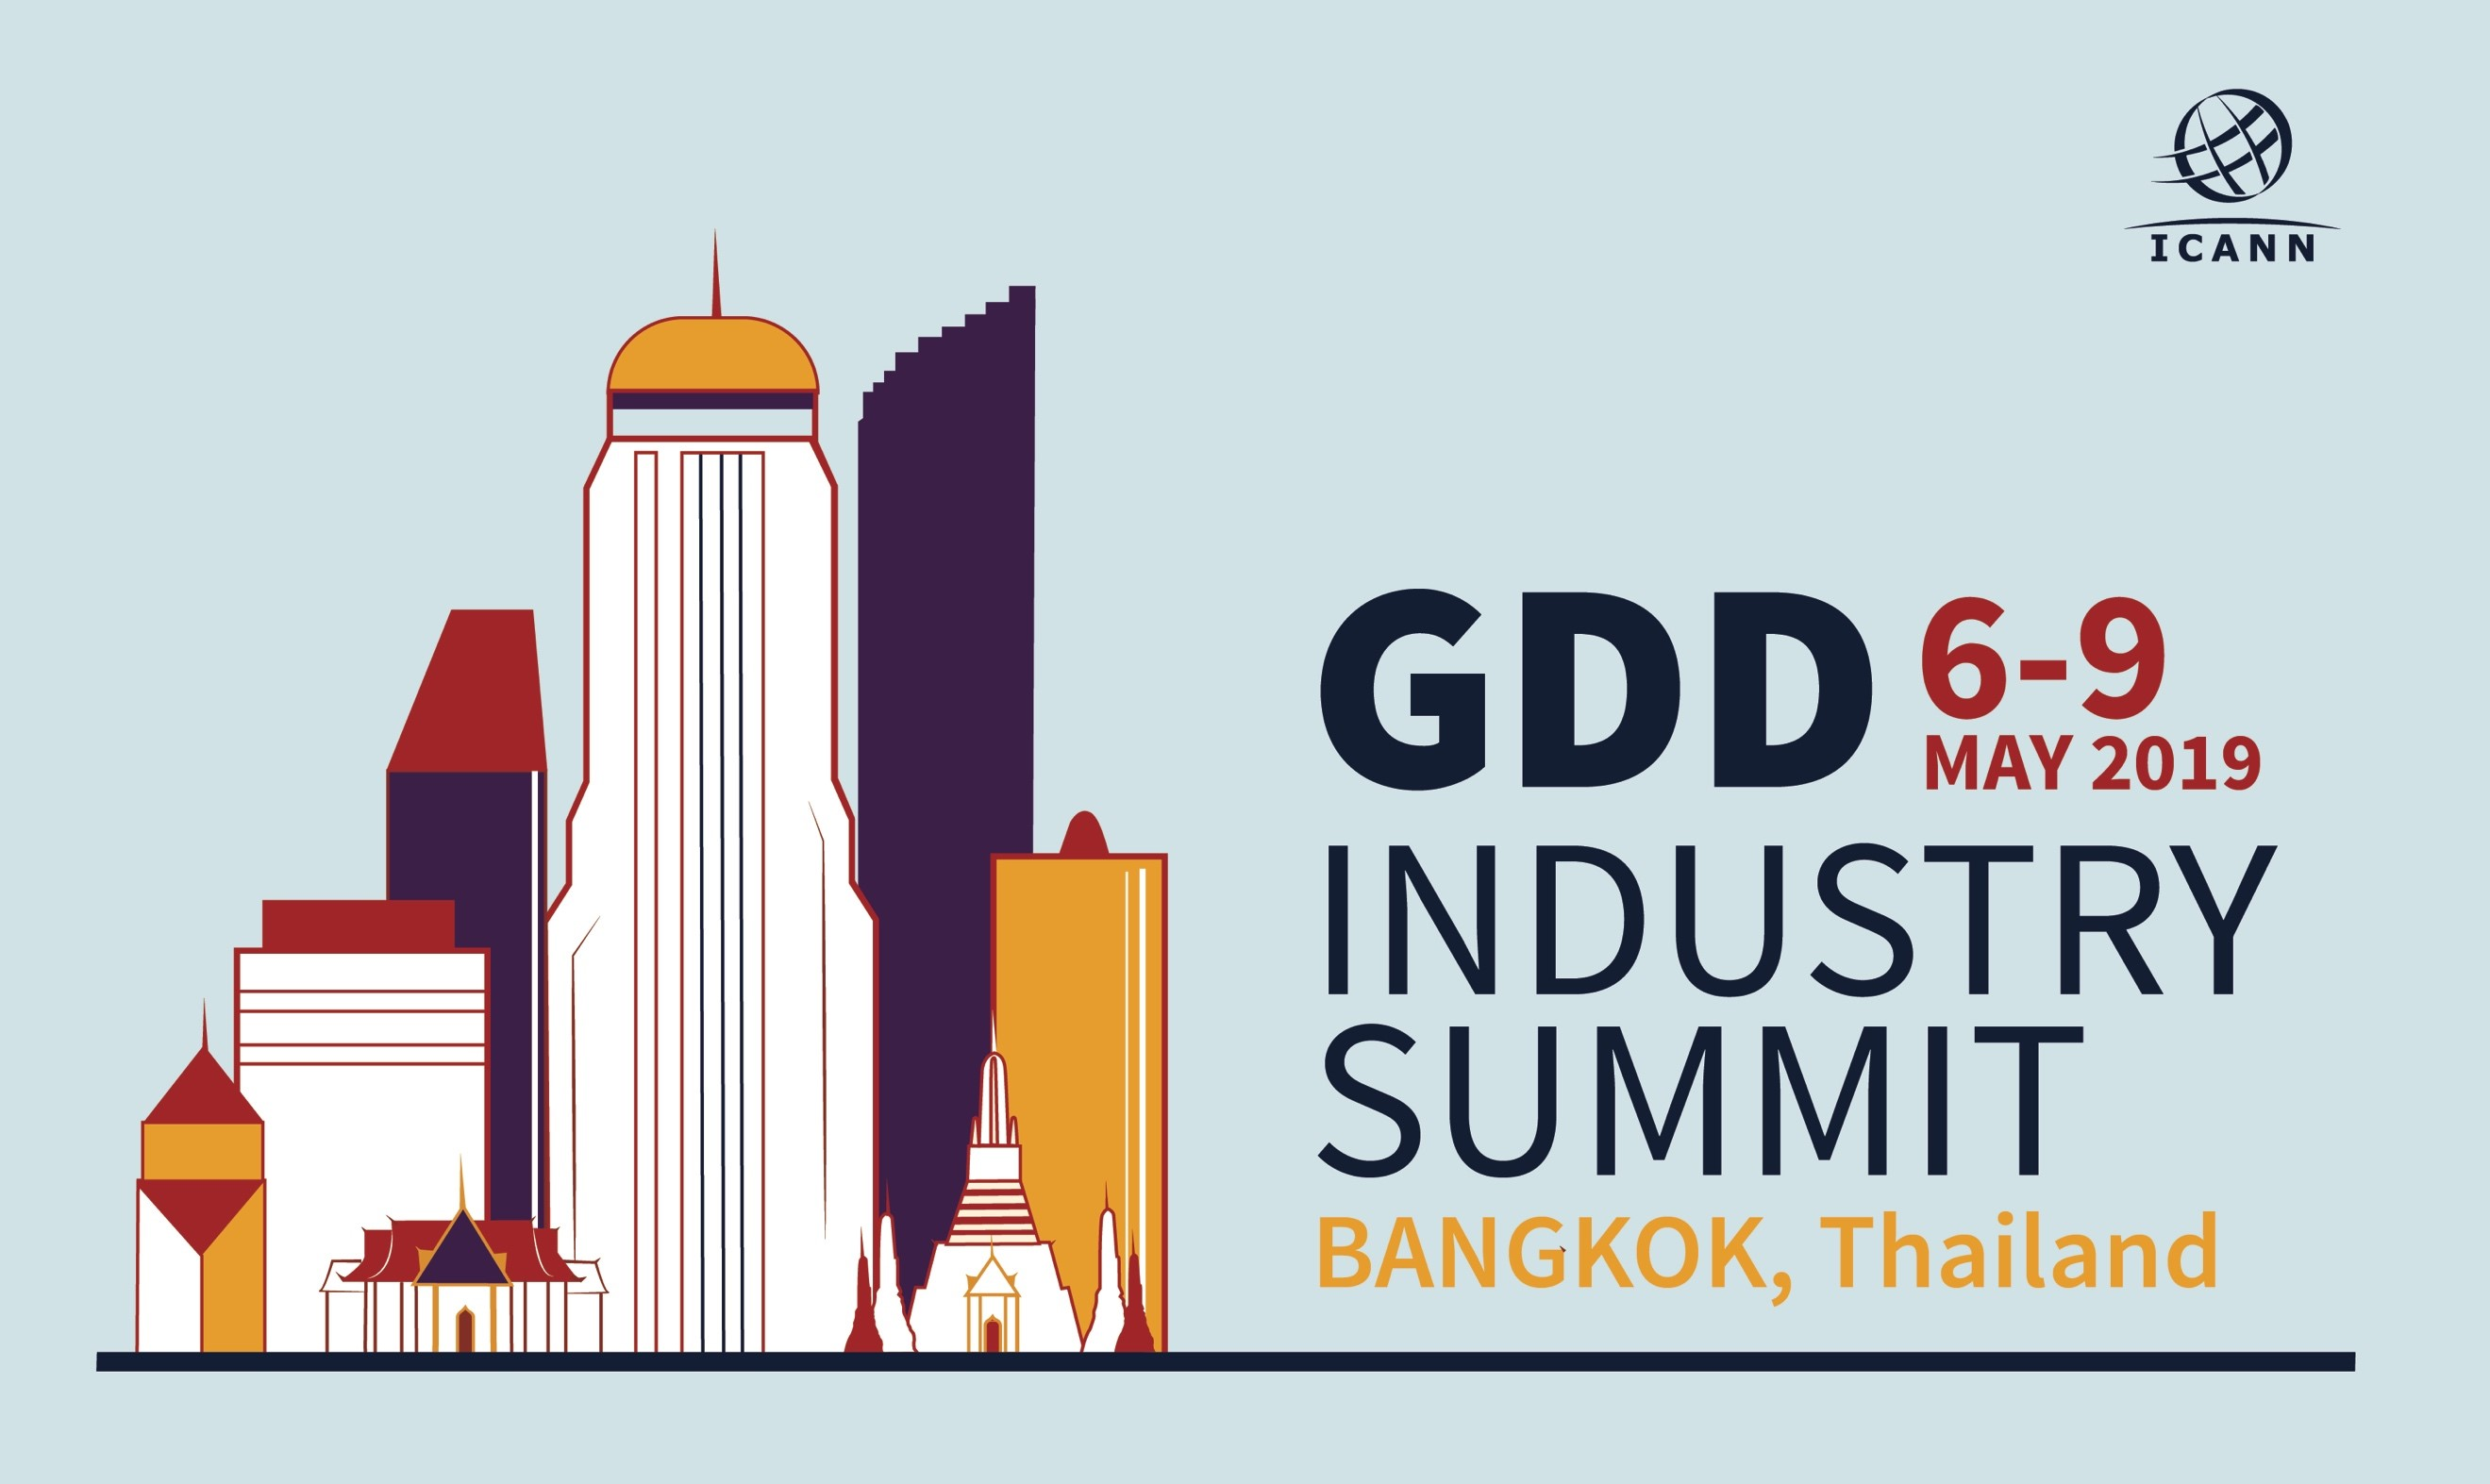 GDD Industry Summit | Bangkok, Thailand | 6-9 May 2019